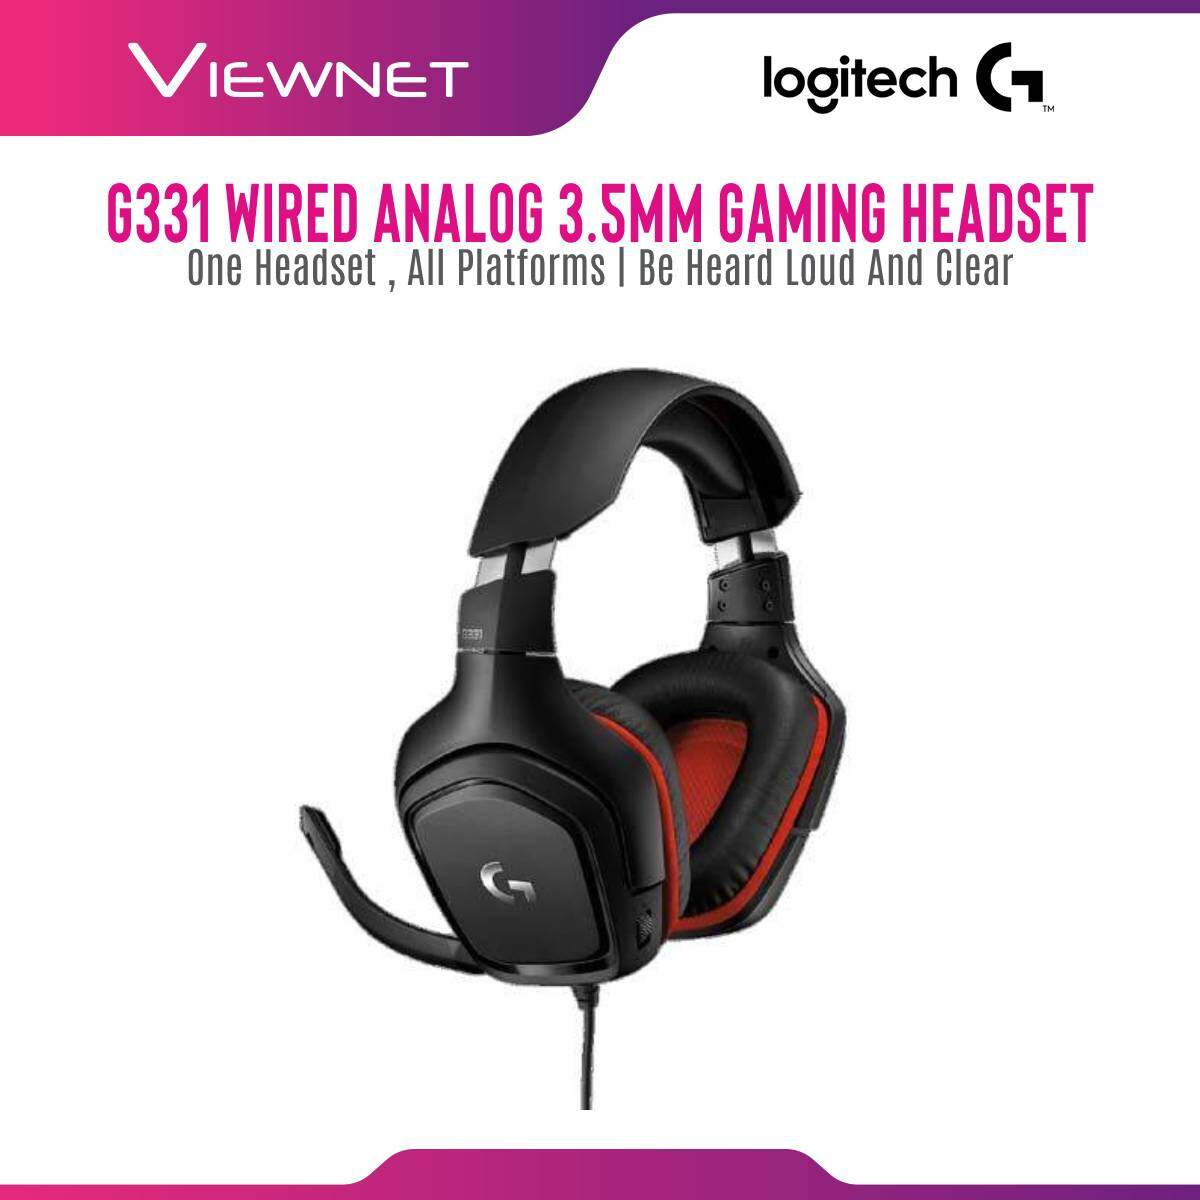 Logitech Wired Gaming Headset G331 (981-000759) with 50MM Driver, Flip To Mute Mic, Light Weight, 2 Meter 3.5MM Audio Jack